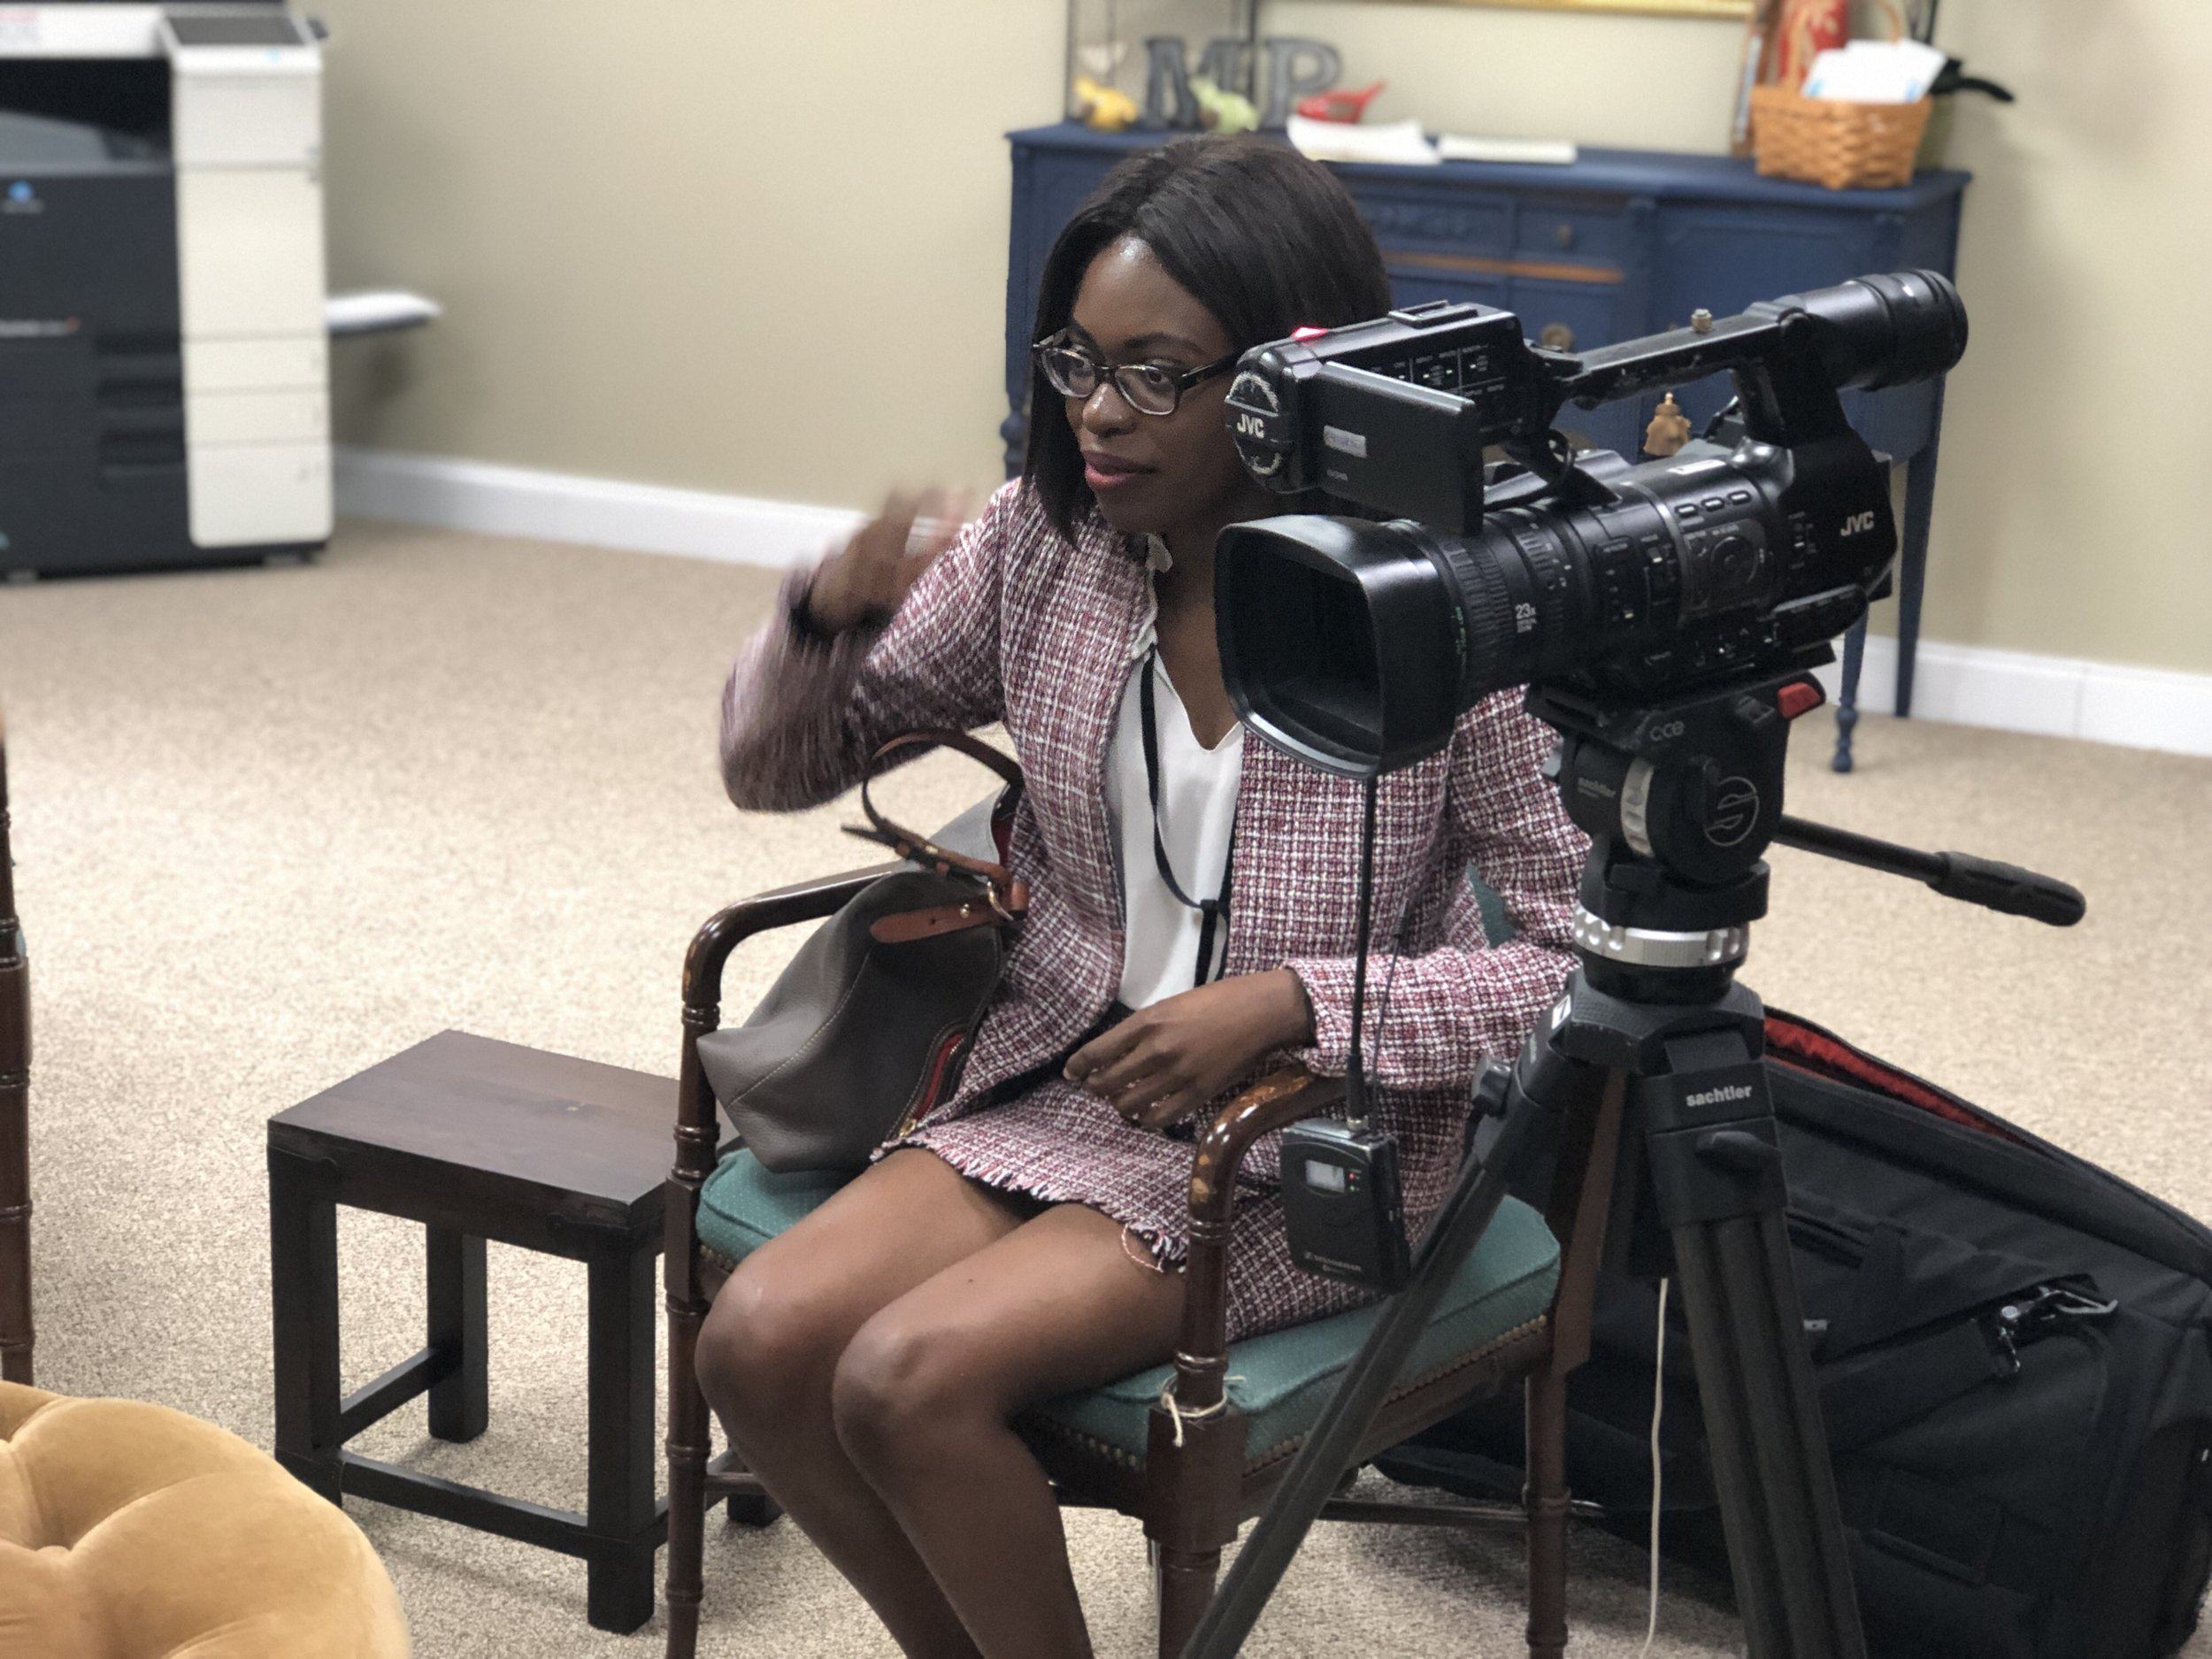 WRBL Correspondent Anjelicia Bruton covering all angles of the story by visiting the Micah's Promise for follow up interview.